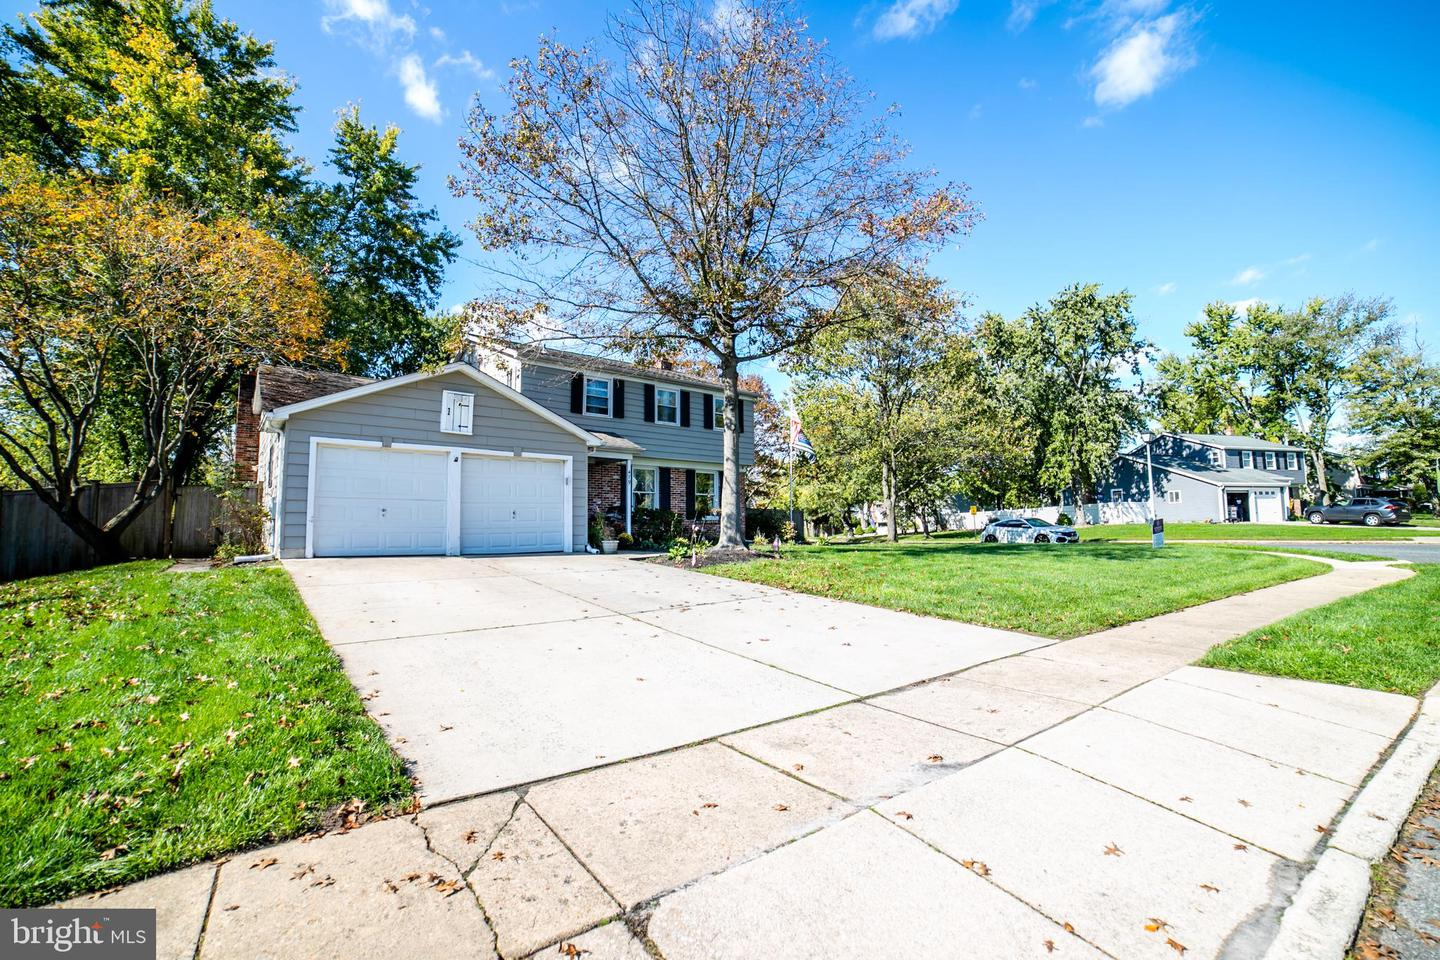 479 HAMPTON LN, SOMERDALE, NJ 08083